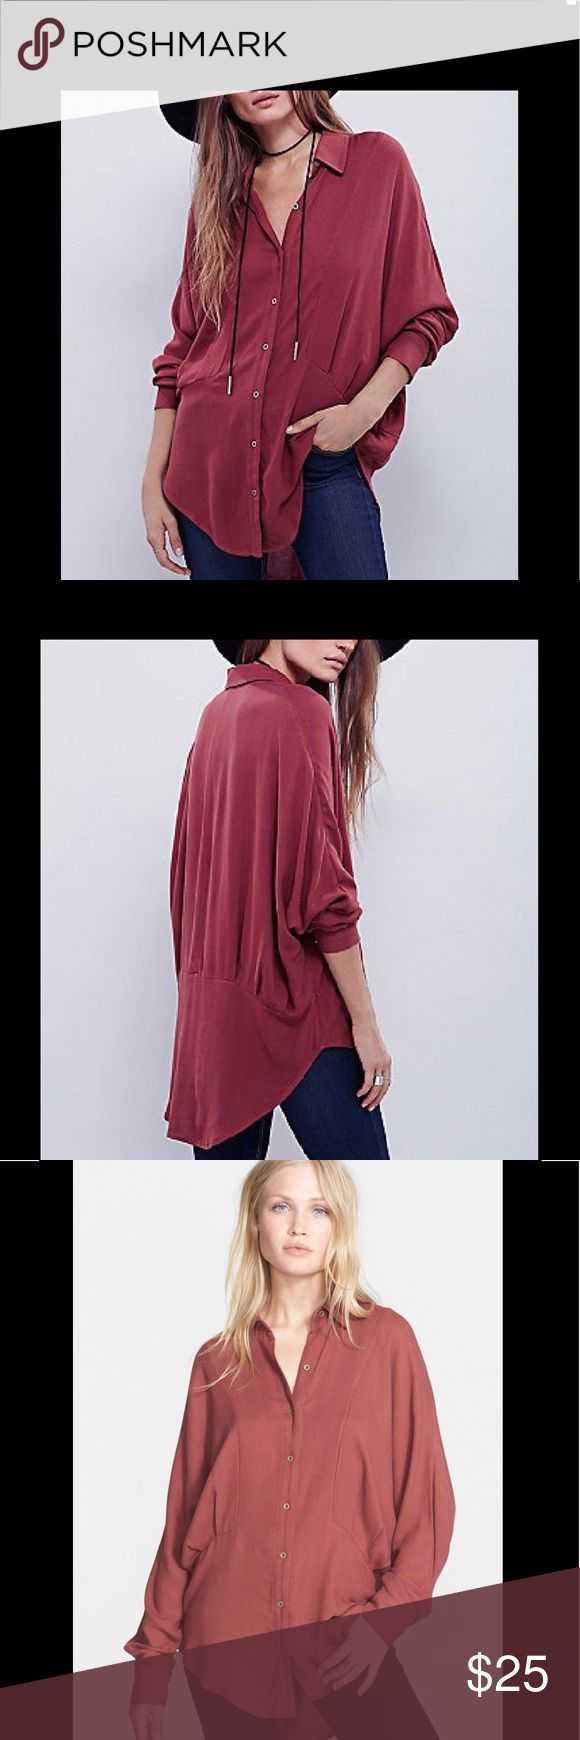 """Free People True Affection Herringbone Shirt Free People 'True Affection' Herringbone Button Down Shirt, size medium, color is earth red. Slouchy dolman sleeves & a draped shirttail hem accentuate the stylishly oversized fit of a paneled button down shirt textured in a subtle Herringbone motif. 30"""" length, spread collar, 2 button barrel cuffs, 100% rayon. First 3 photos are stock photos, in good used condition but it does have some pilling from wear that you can see in the last few pictures…"""